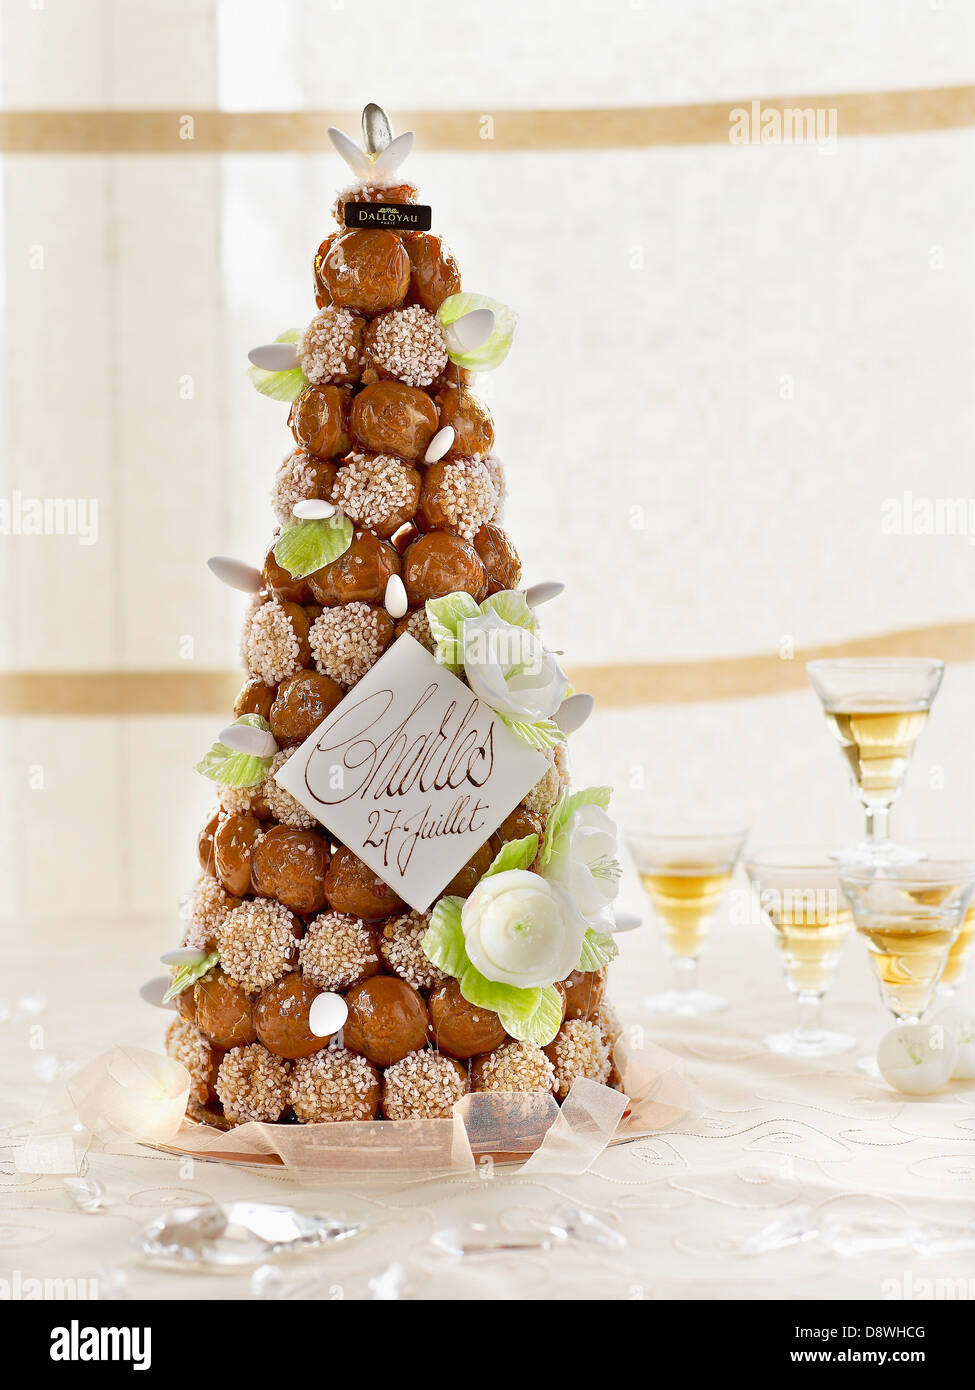 French Wedding cake  Dalloyau creation Stock Photo  57110832   Alamy French Wedding cake  Dalloyau creation